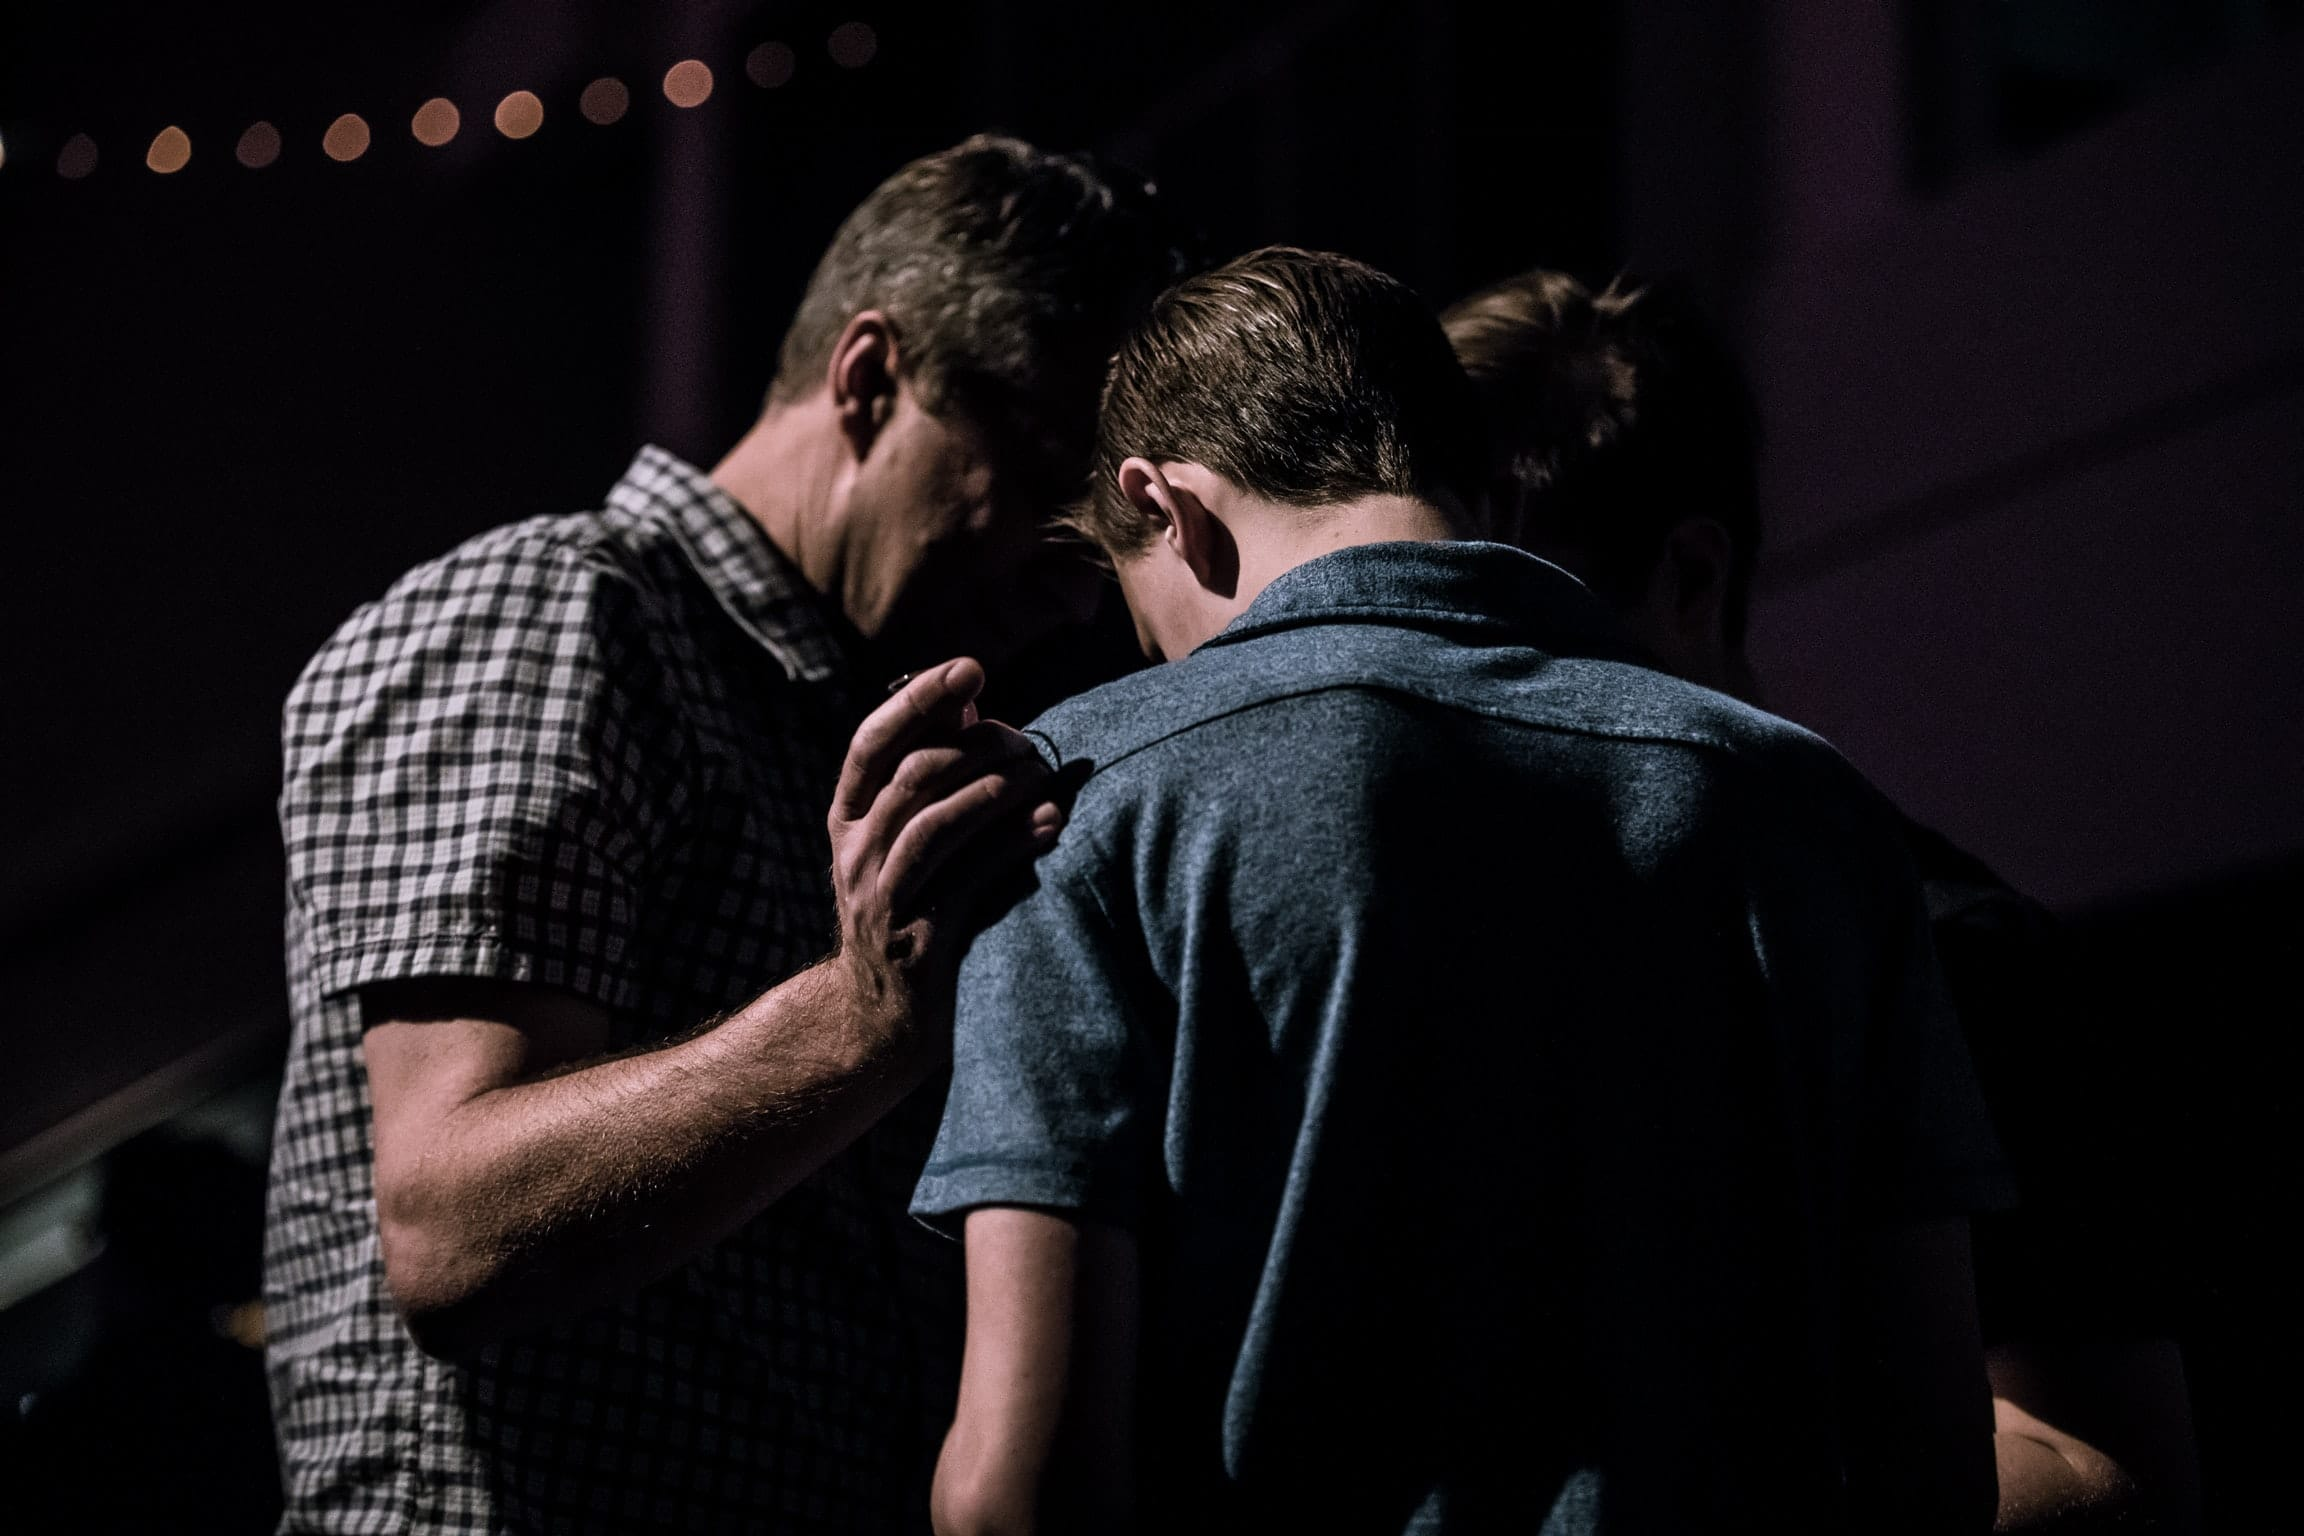 Praying in public for one another